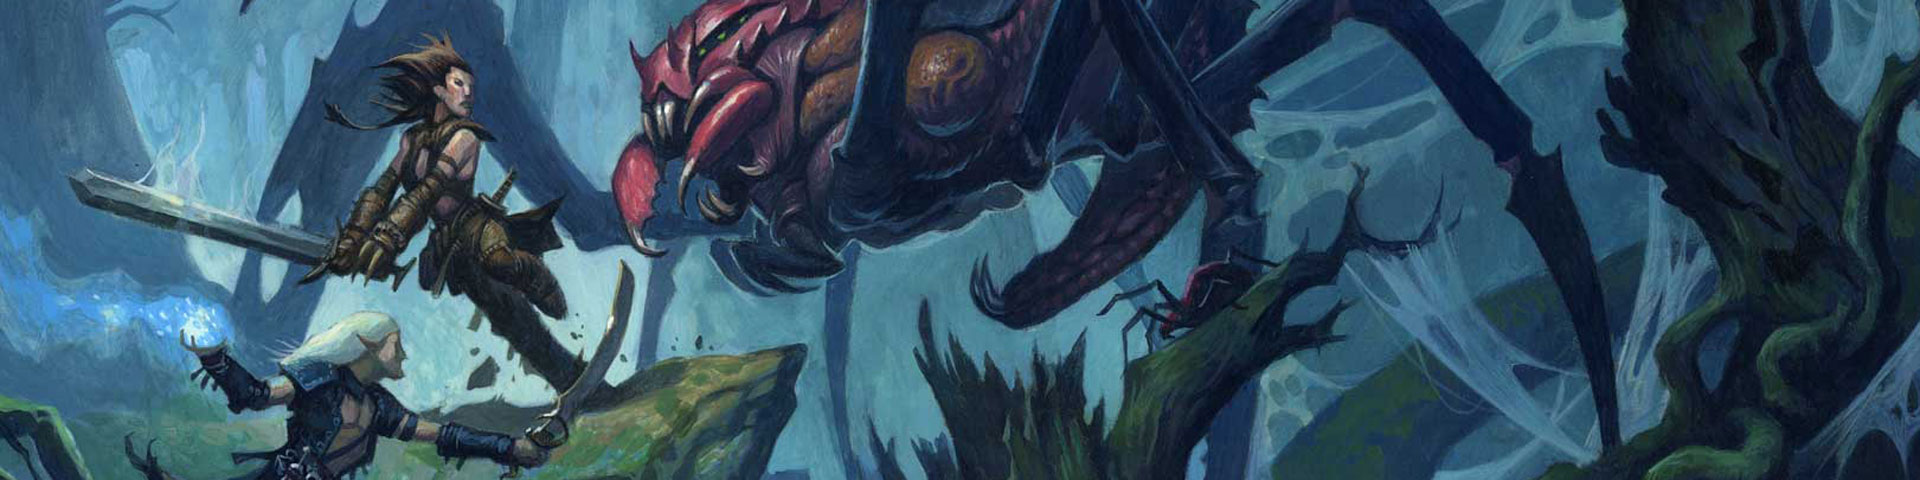 Two adventurers battle a giant spider in an underground cave.